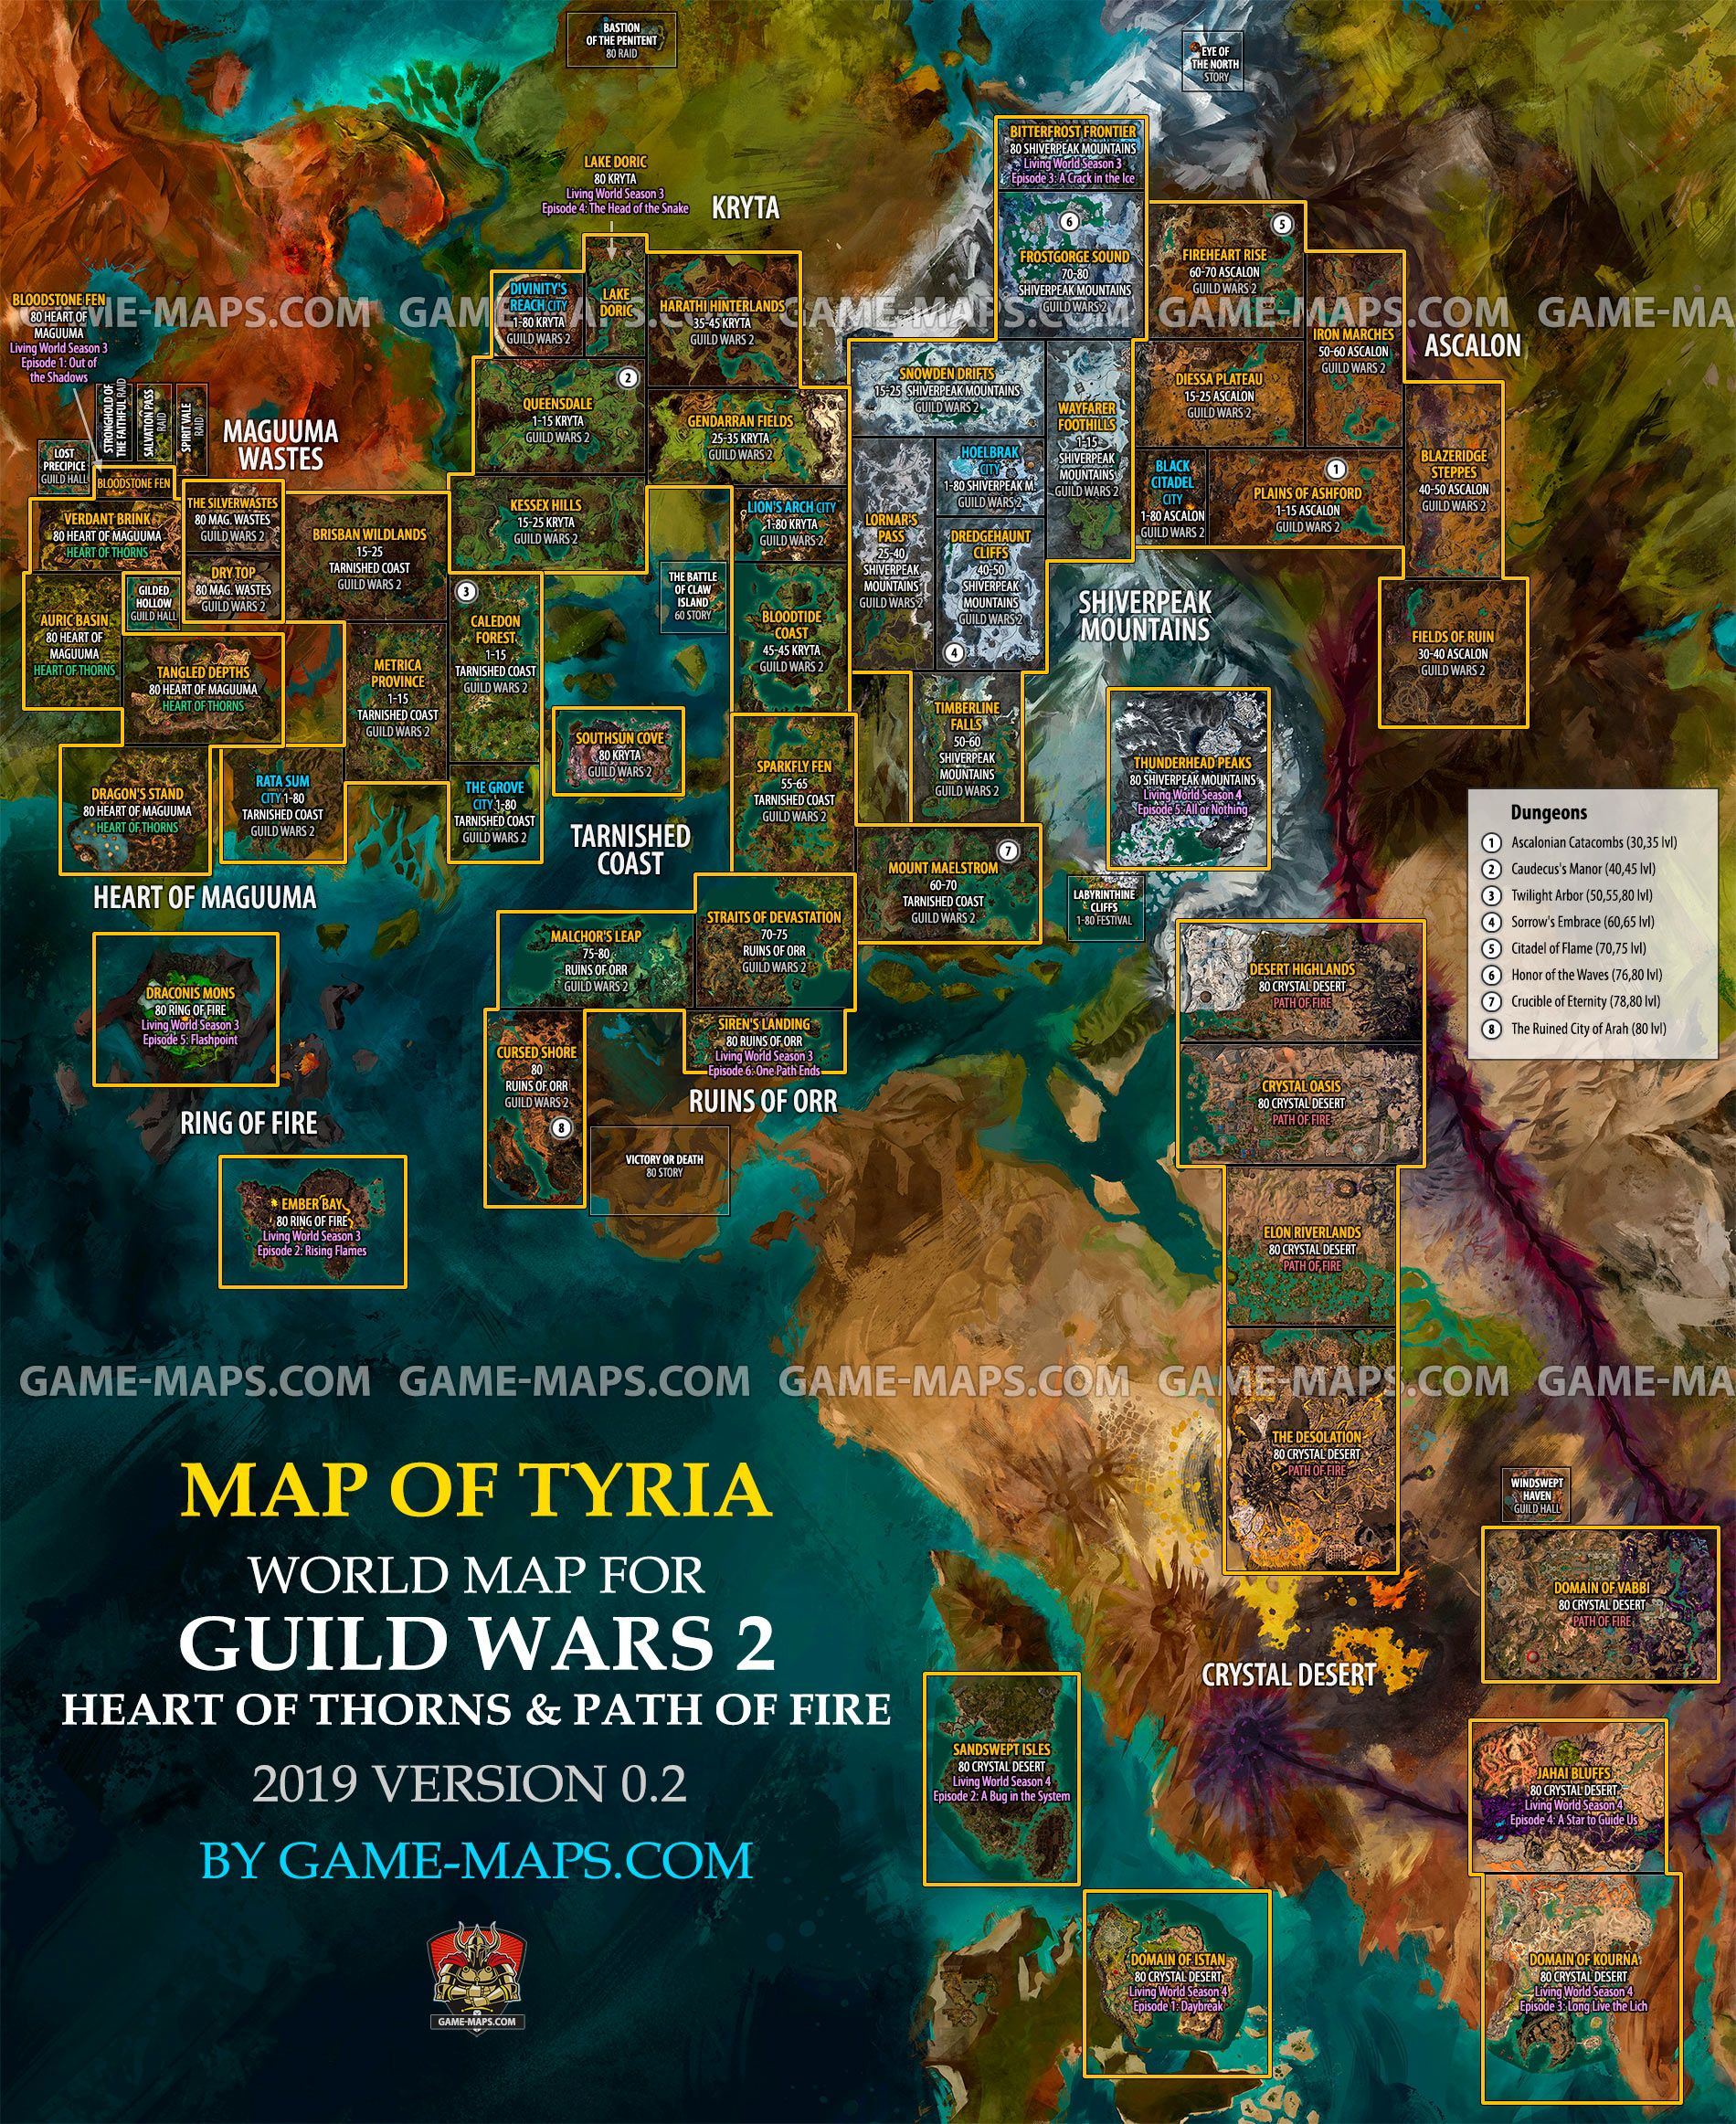 Guild Wars 2 Path Of Fire Map Full World Map for Guild Wars 2, GW2 Heart of Thorns, GW2 Path of